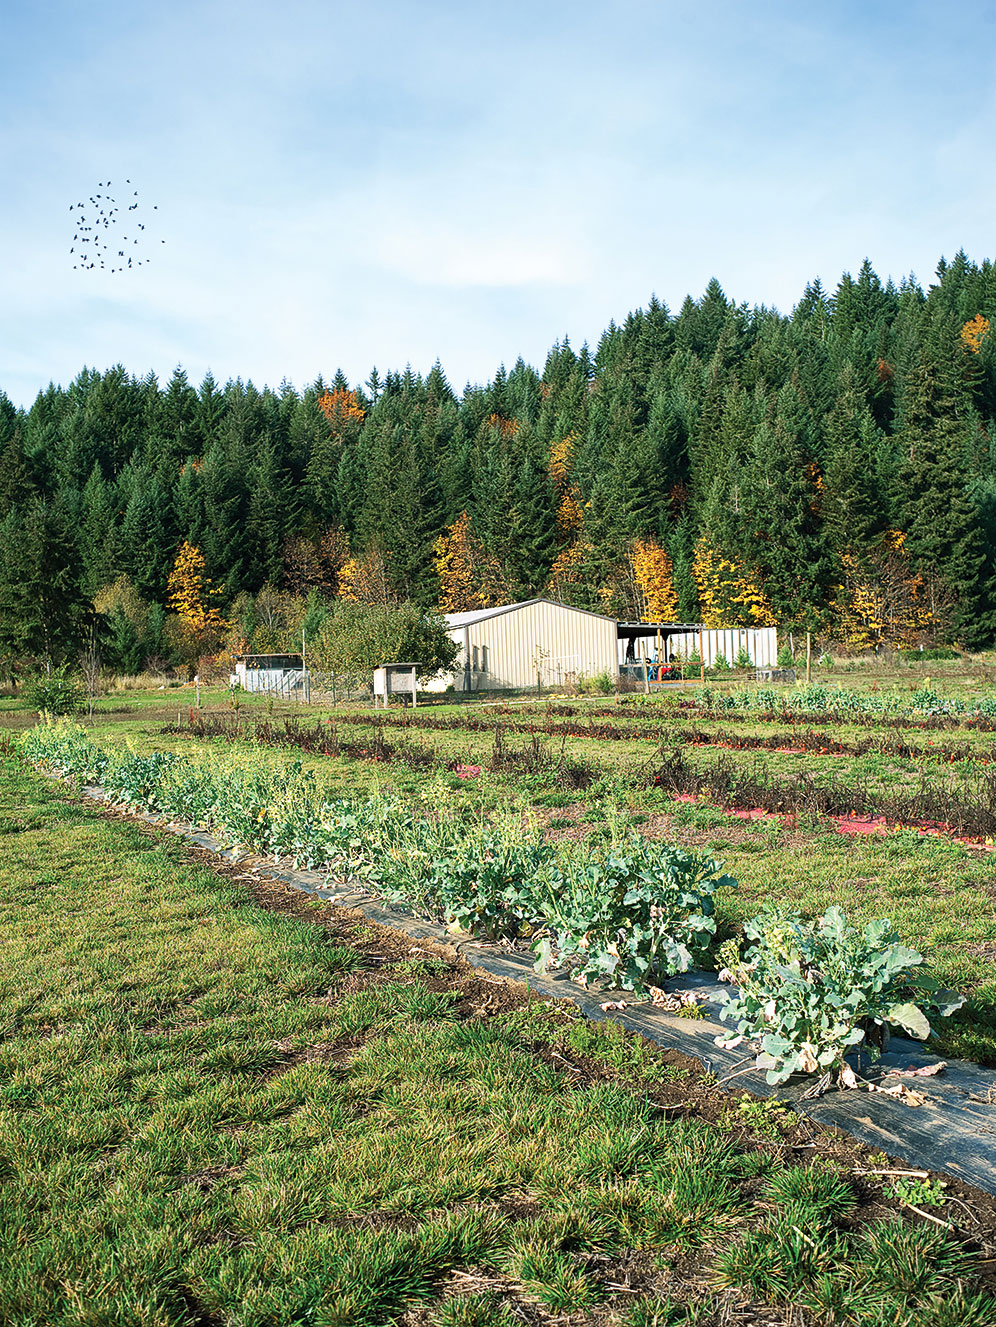 Dairy Creek Farm and Produce